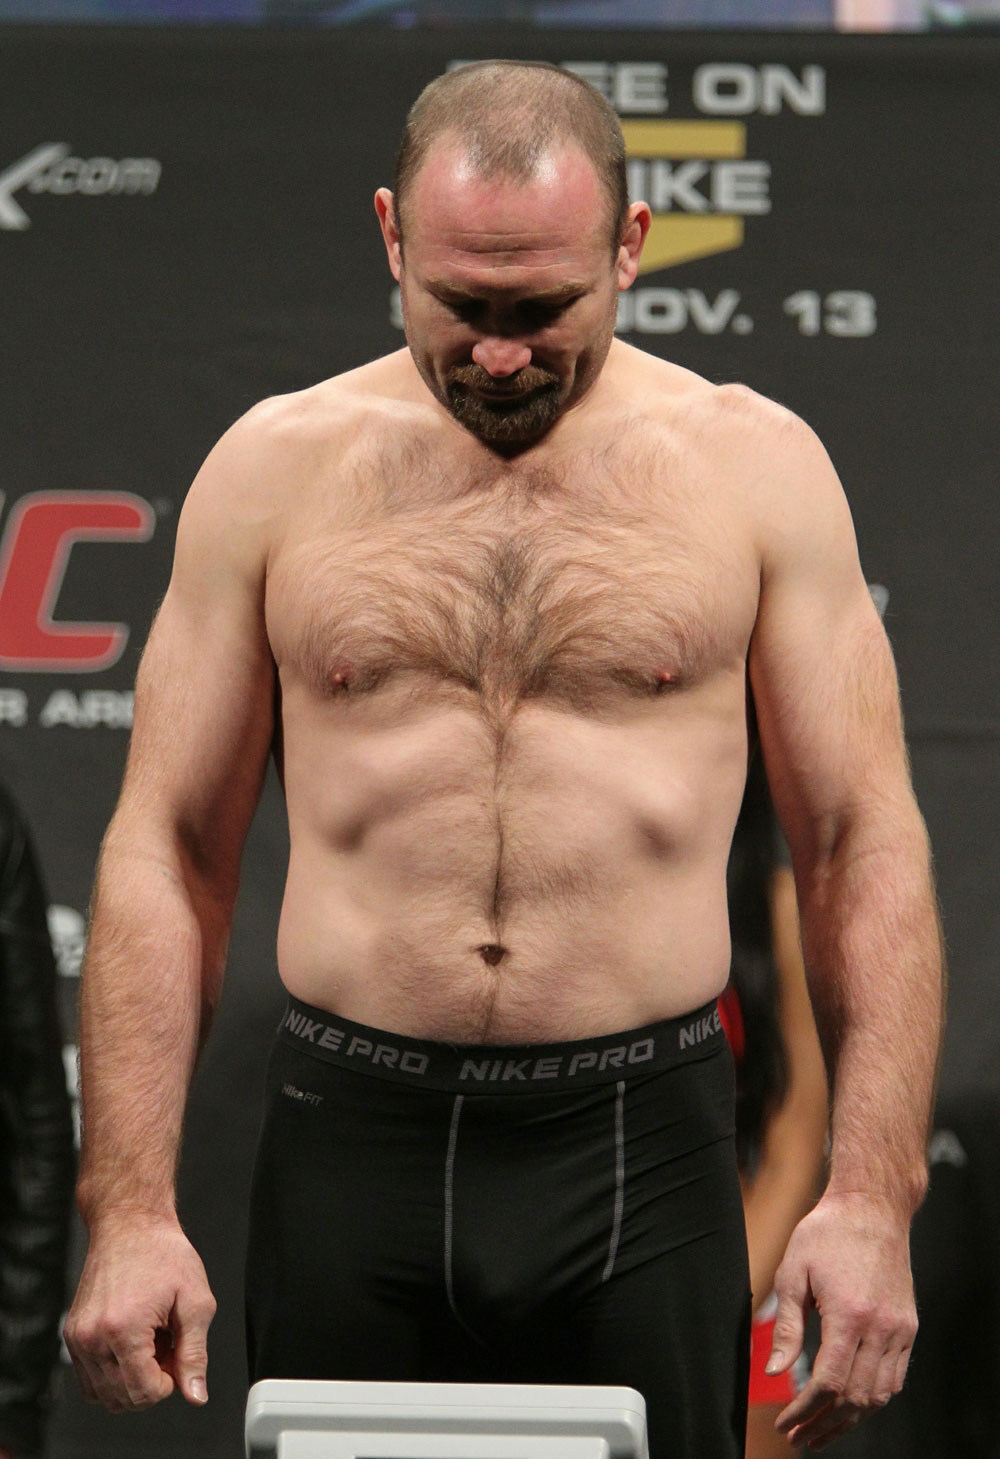 Vladimir &quot;The Janitor&quot; Matyushenko weighs in at 205 lbs at the UFC 122 weigh-in at the K&scaron;nig Pilsener Arena on November 12,  2010 in Oberhausen, Germany.  (Photo by Josh Hedges/Zuffa LLC/Zuffa LLC via Getty Images)